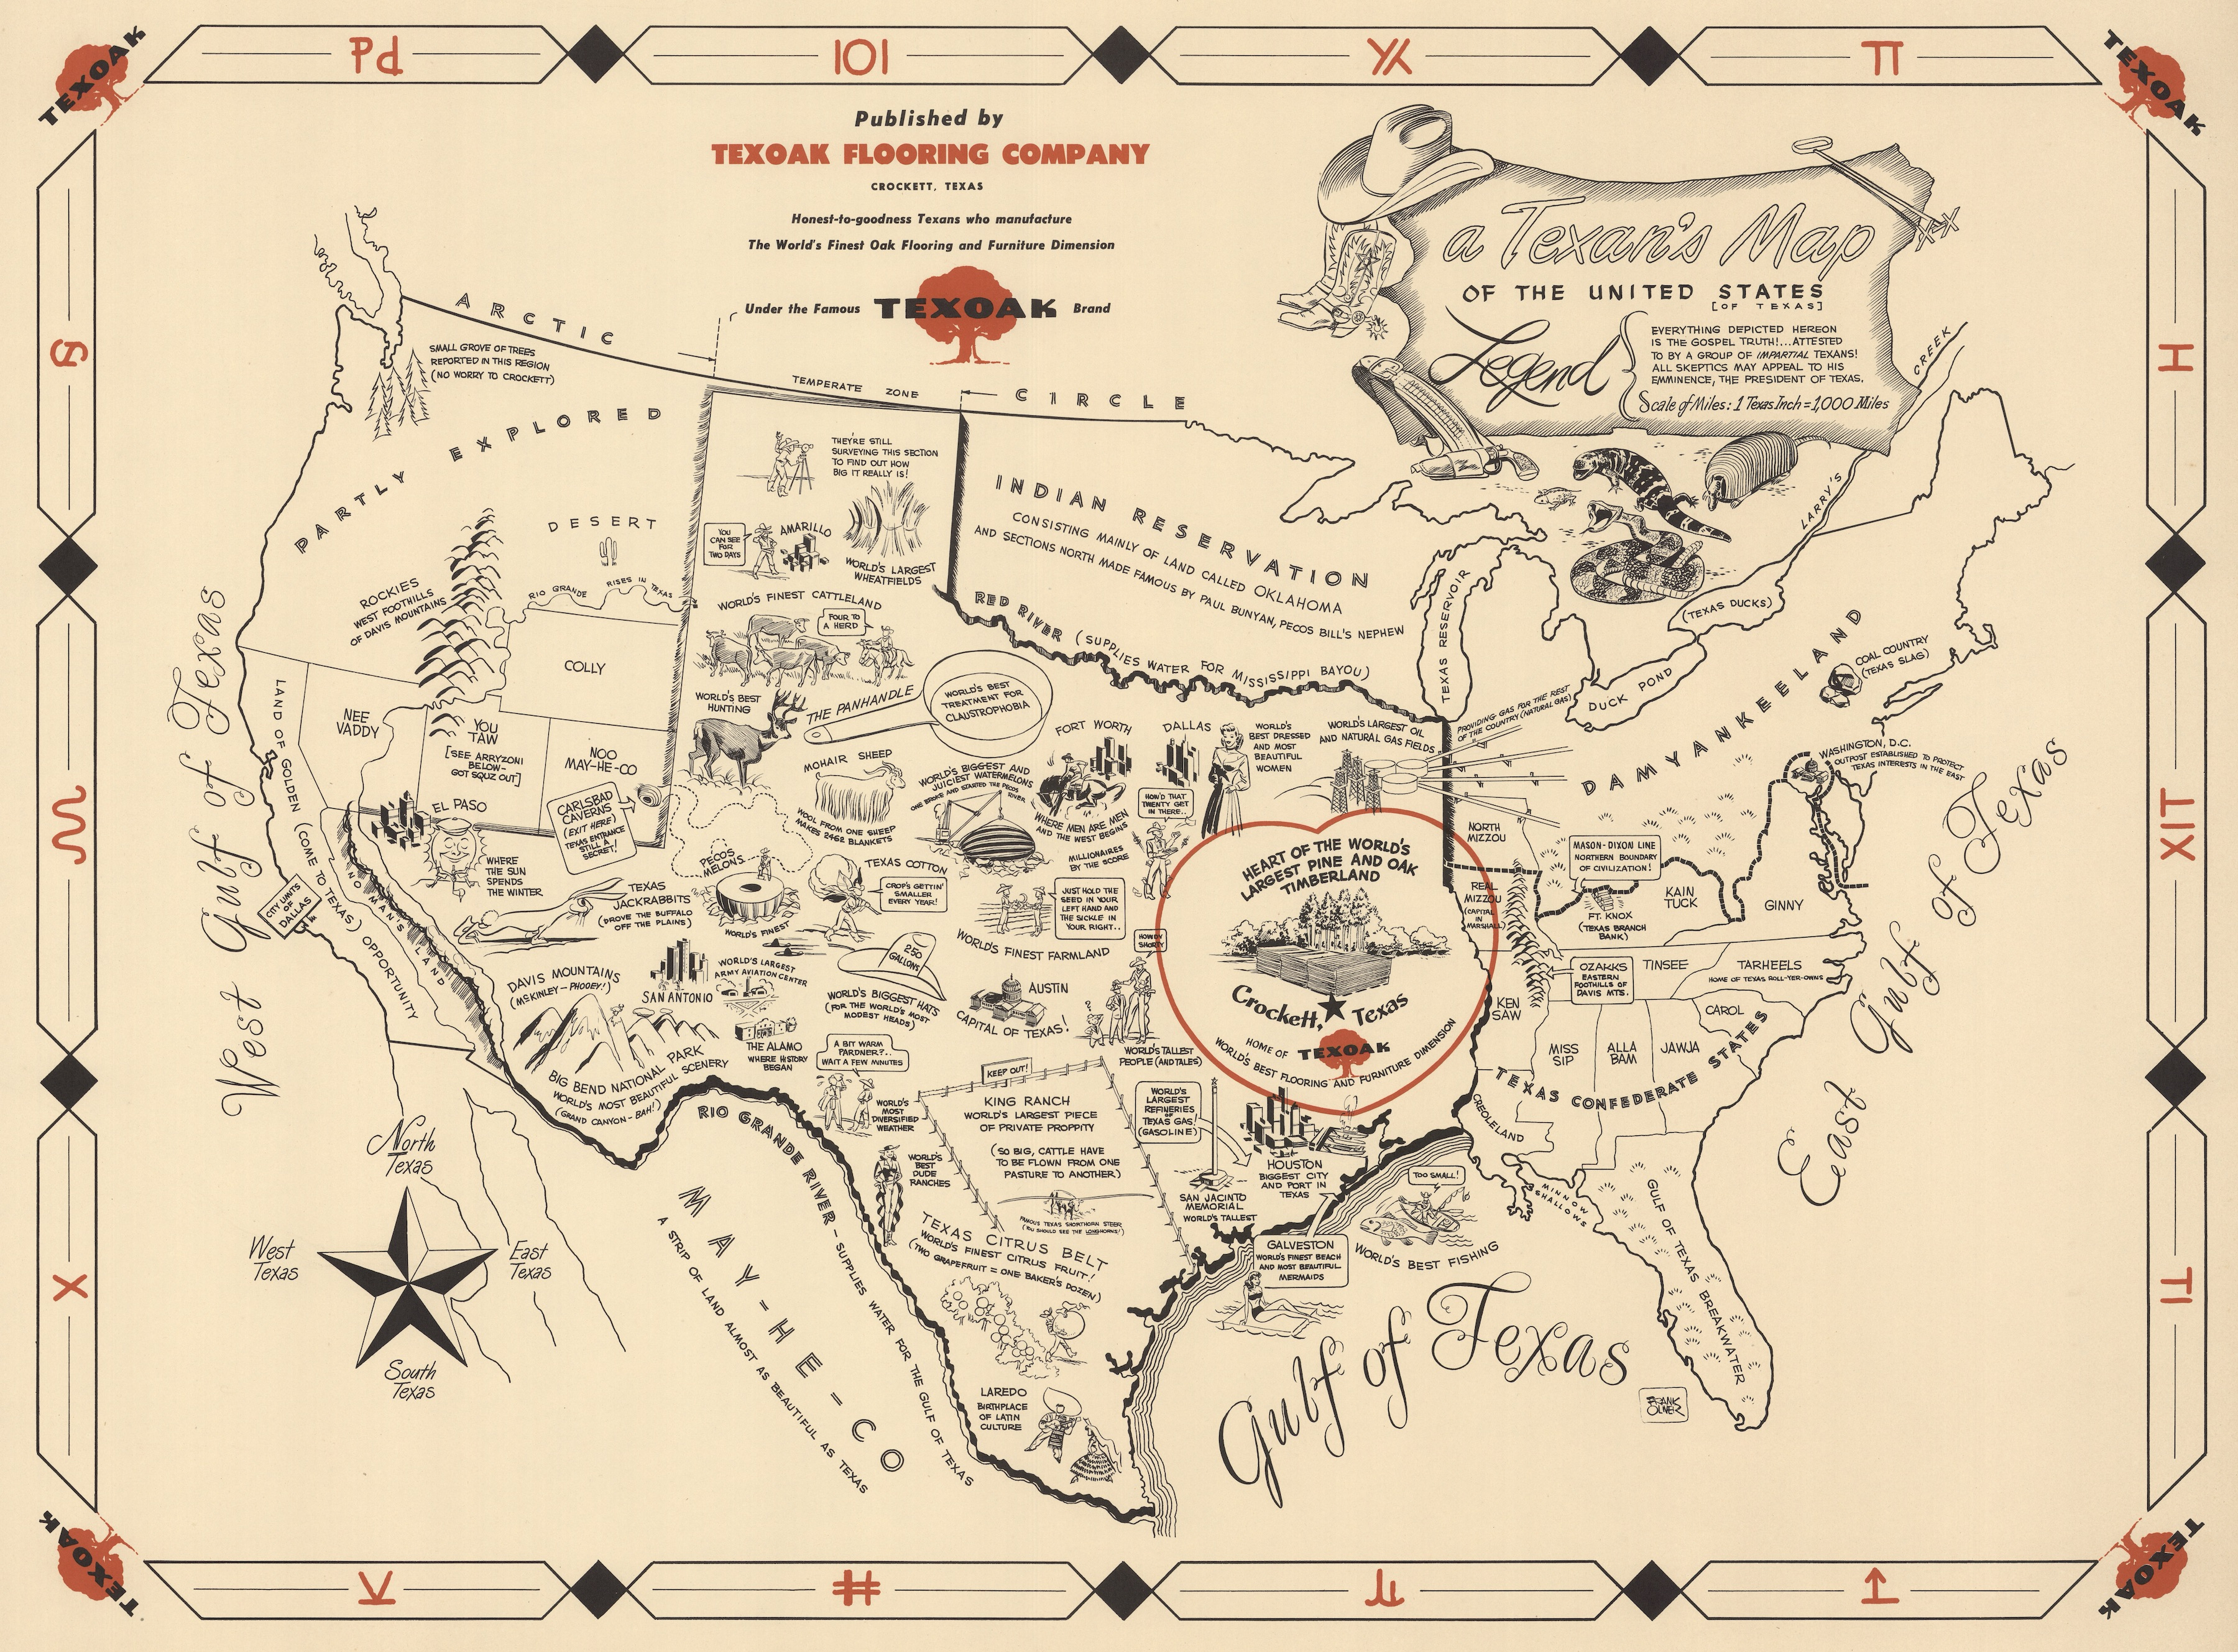 A Texan's Map To The United States (Of Texas) - Crockett Texas Map